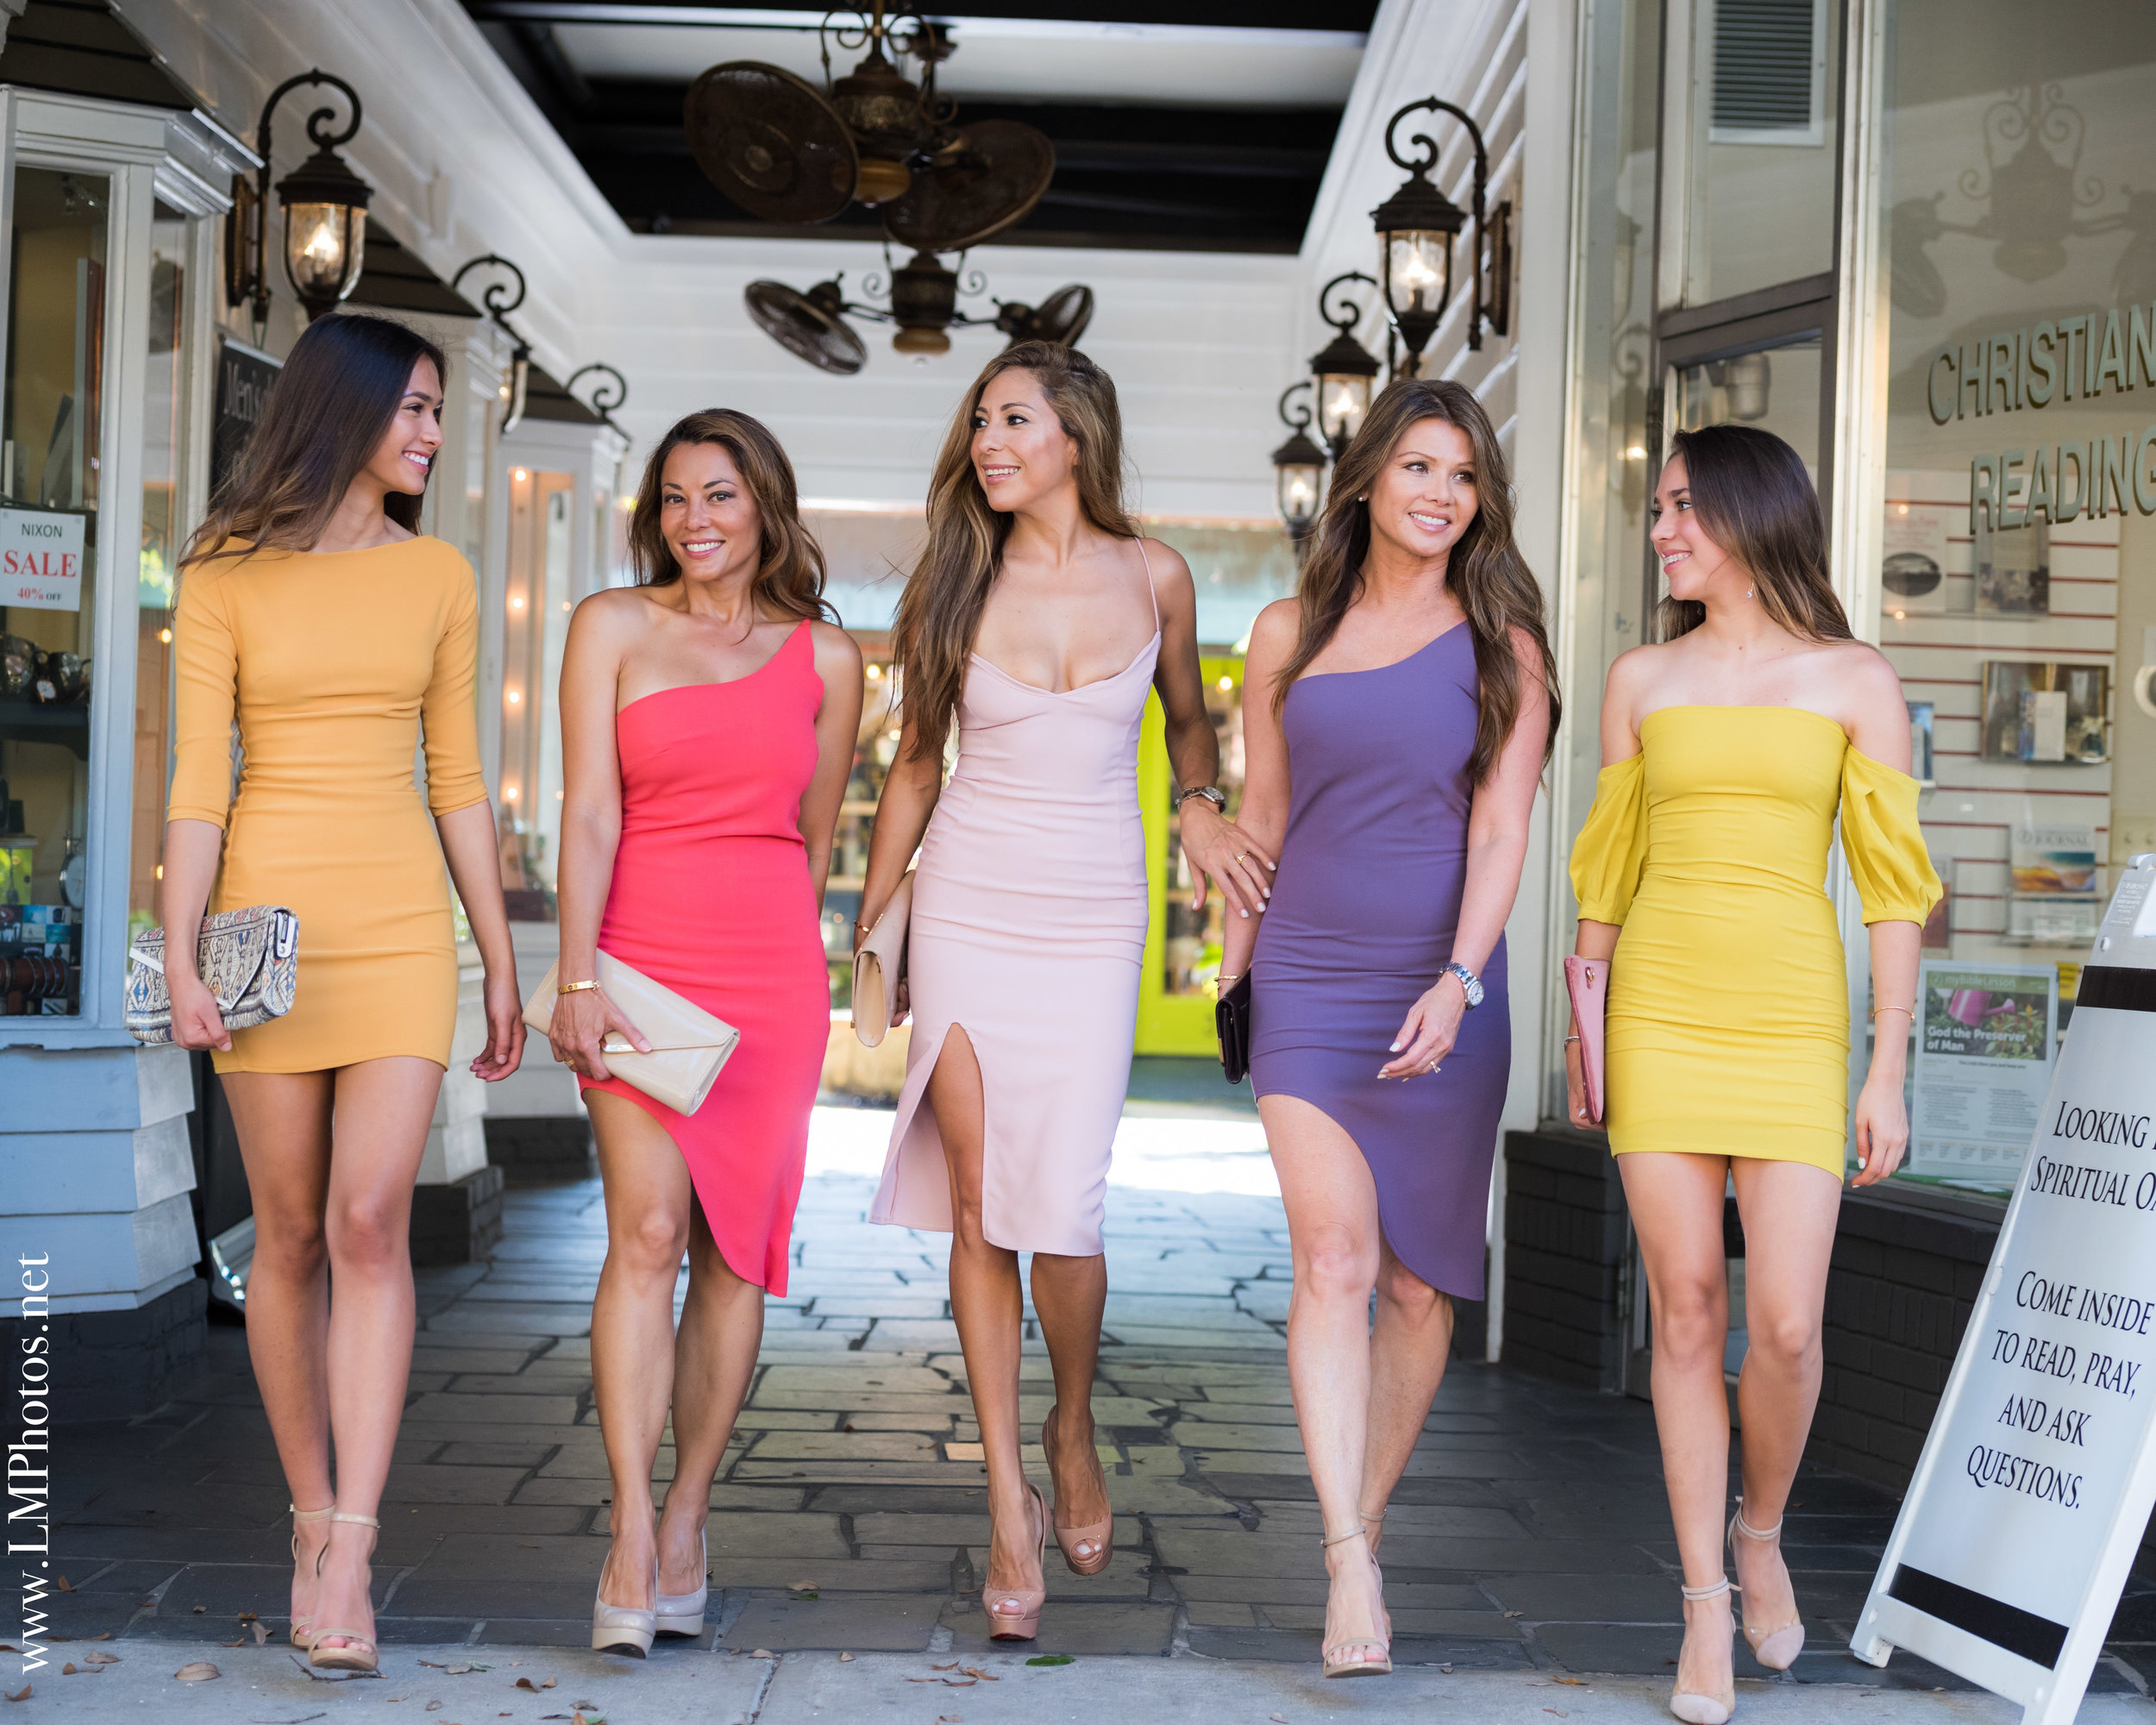 models for Diana Phillips collection